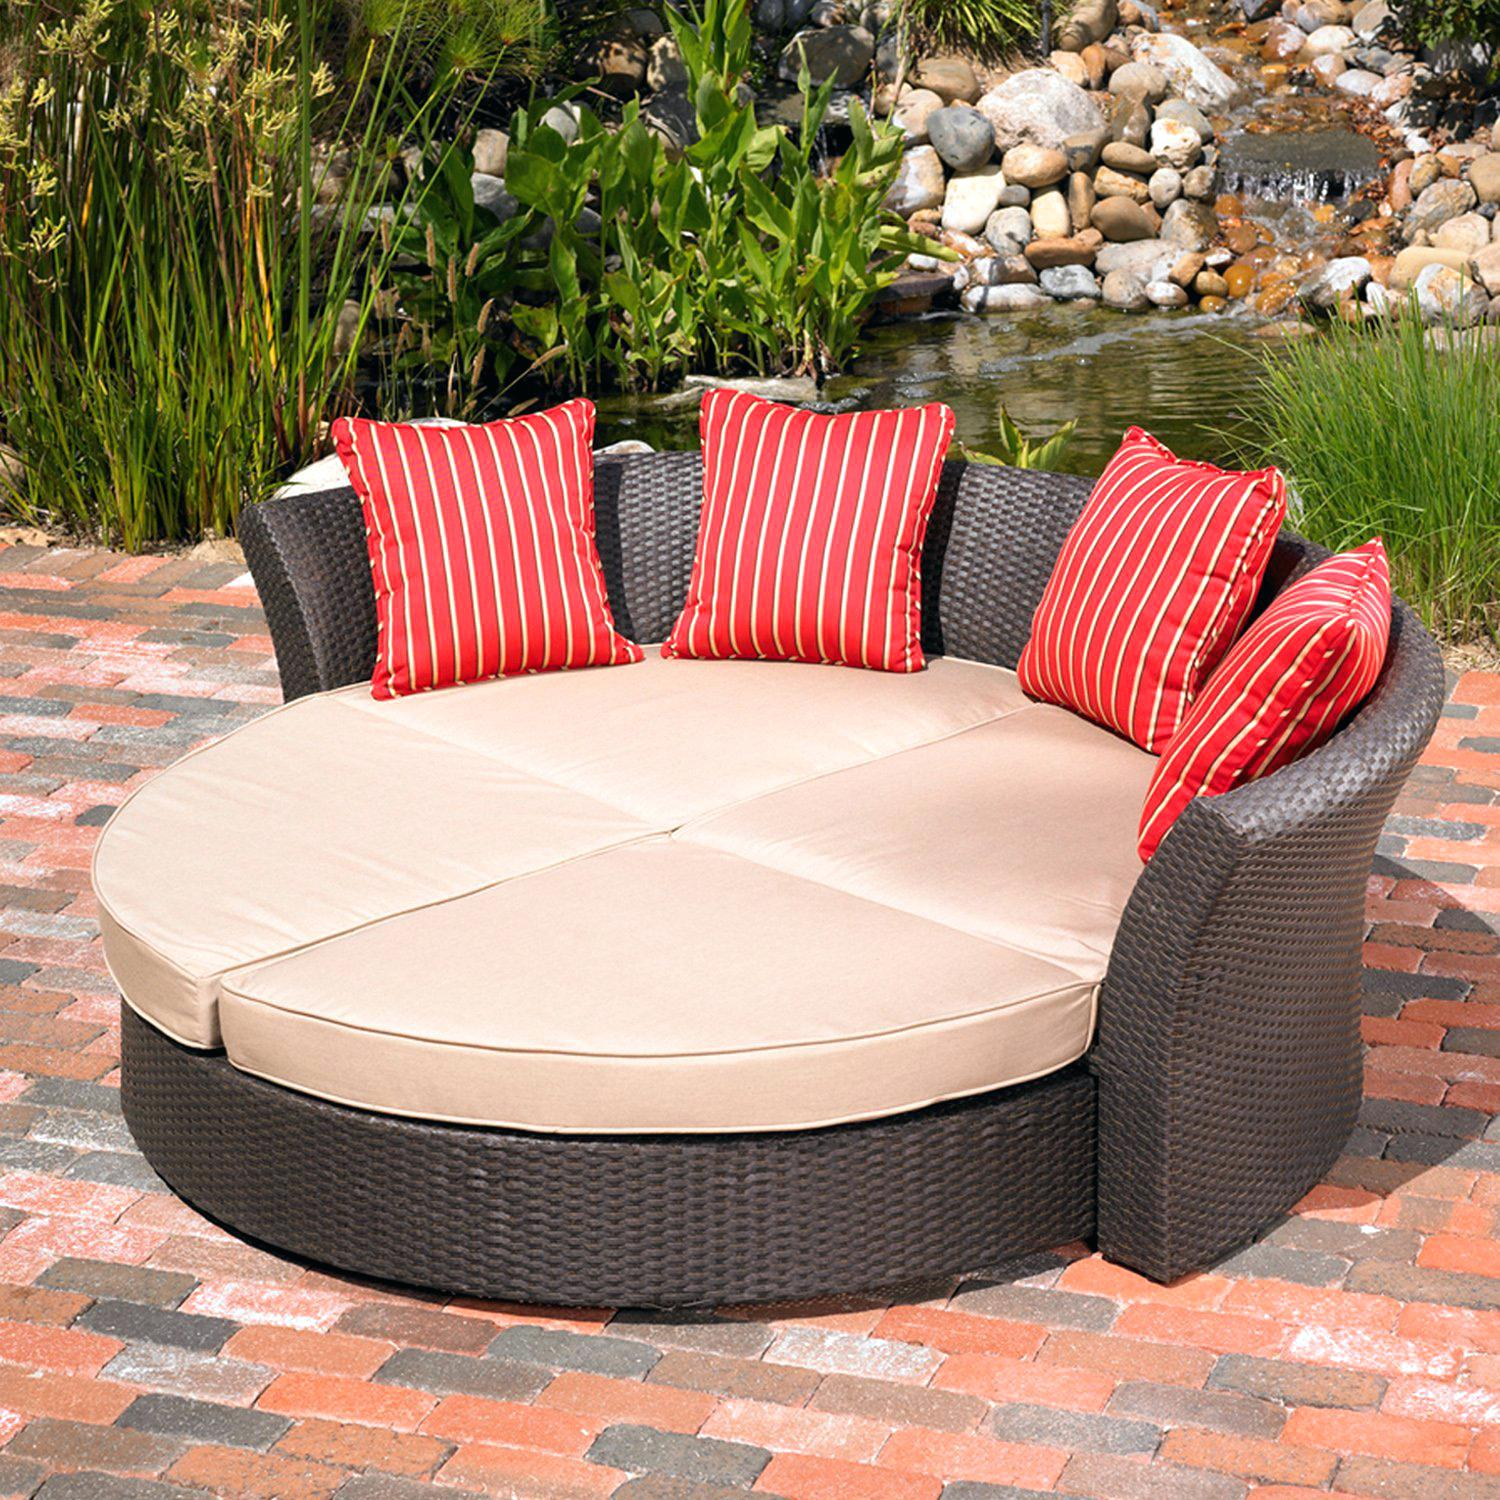 Cushion Sunbrella Chaise Cushions For Cozy Outdoor Patio